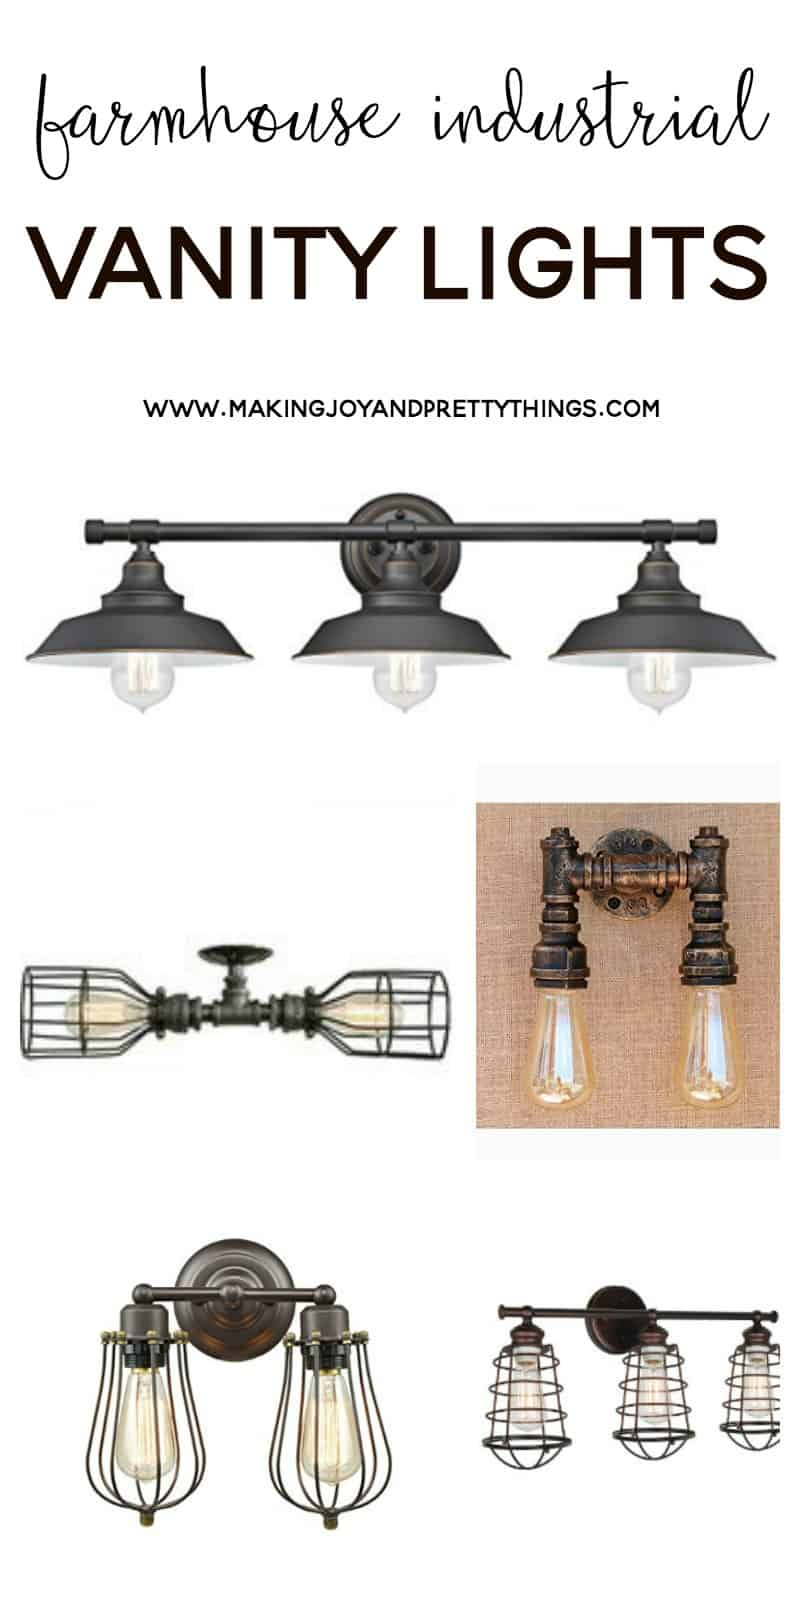 Budget friendly farmhouse industrial vanity lights!!